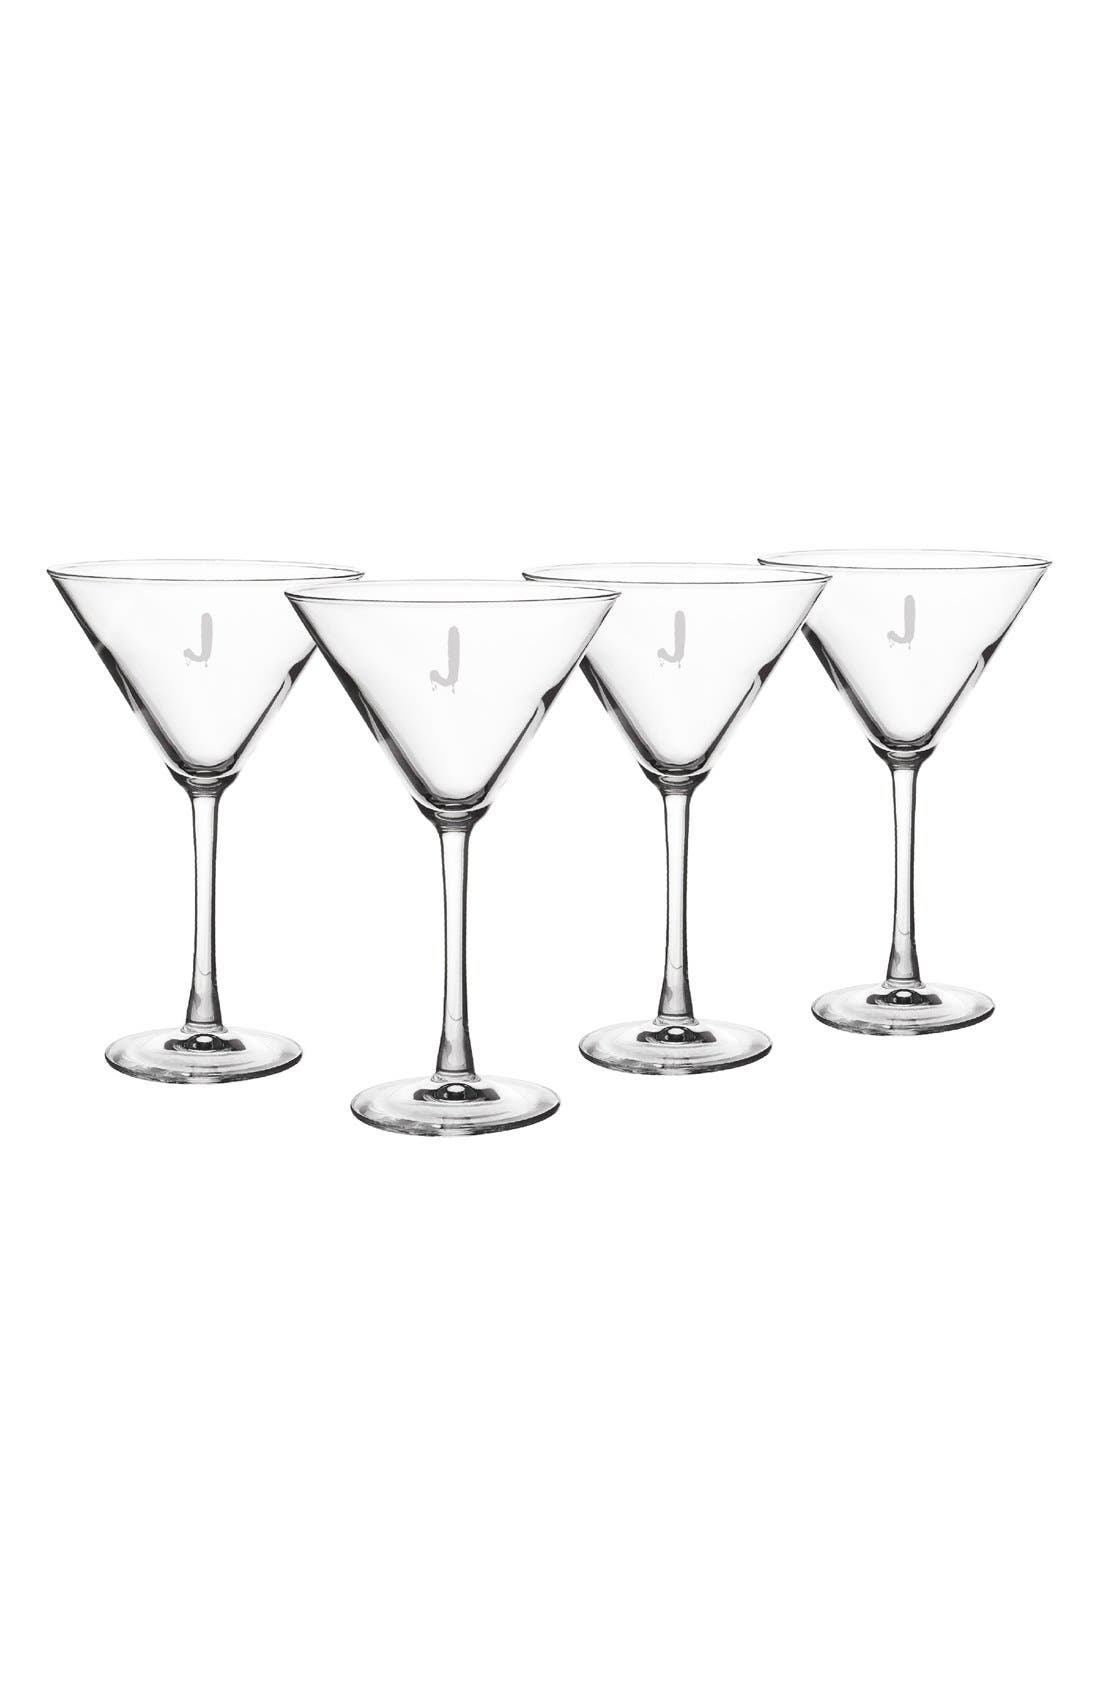 Alternate Image 1 Selected - Cathy's Concepts 'Spooky' Monogram Martini Glasses (Set of 4)